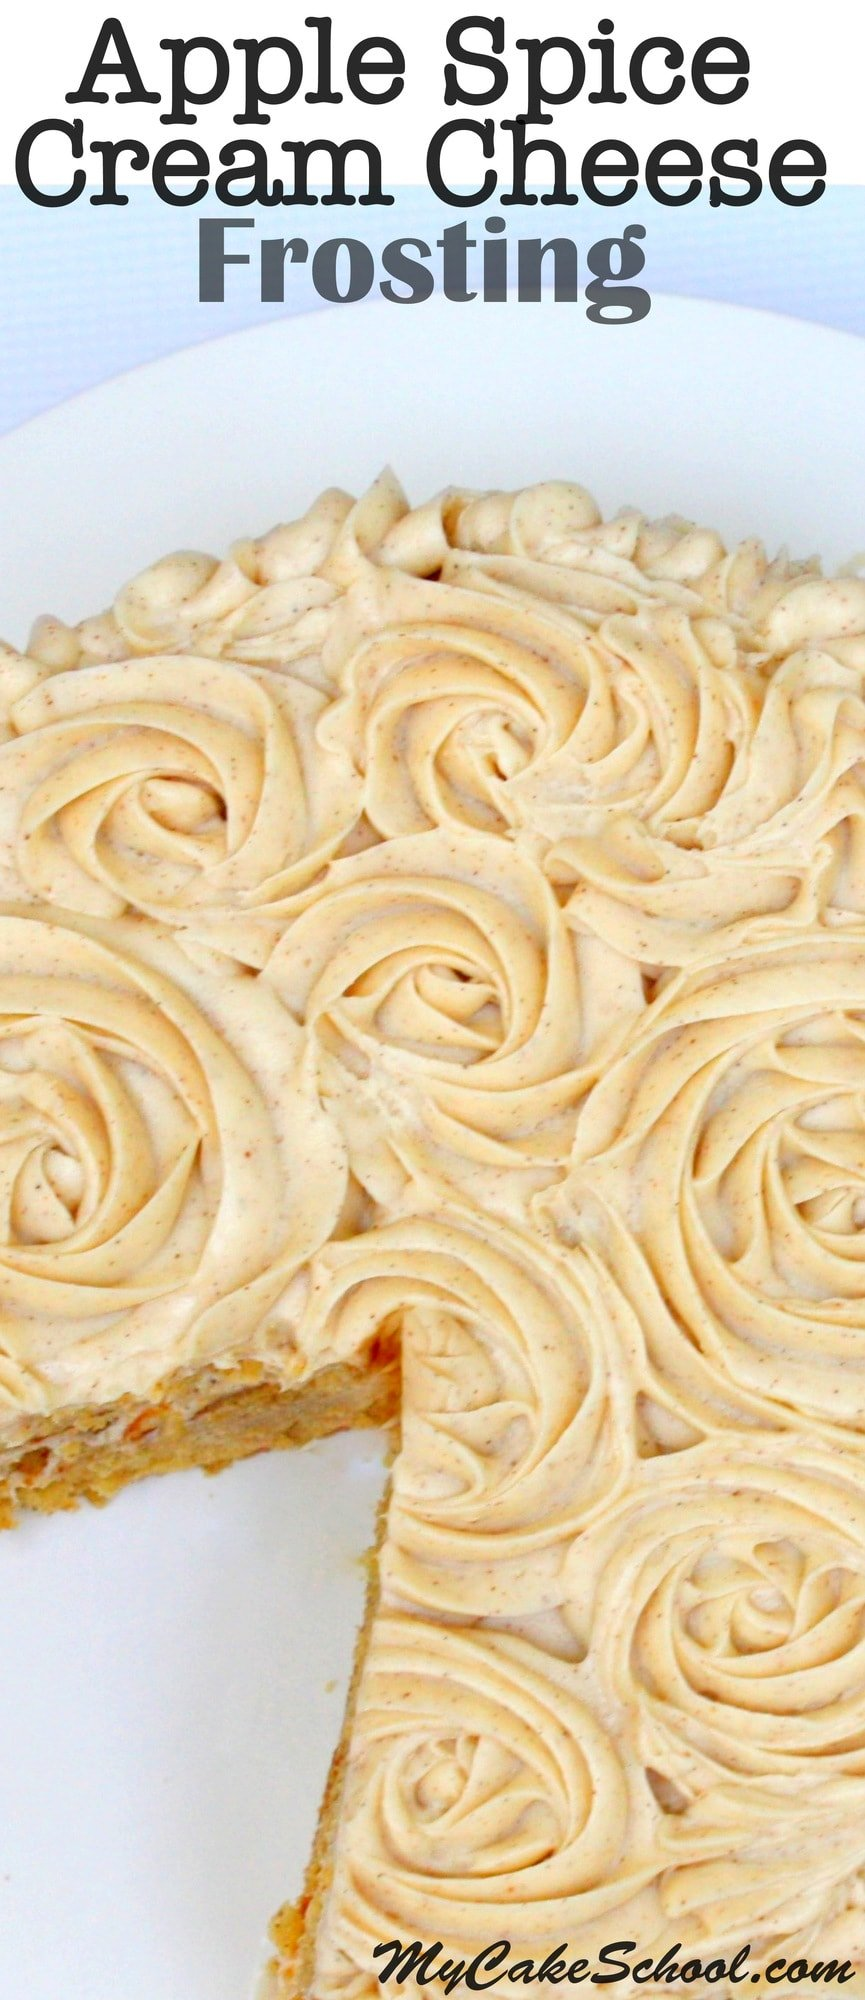 ... Cream Cheese Frosting is Fantastic! The perfect filling and frosting